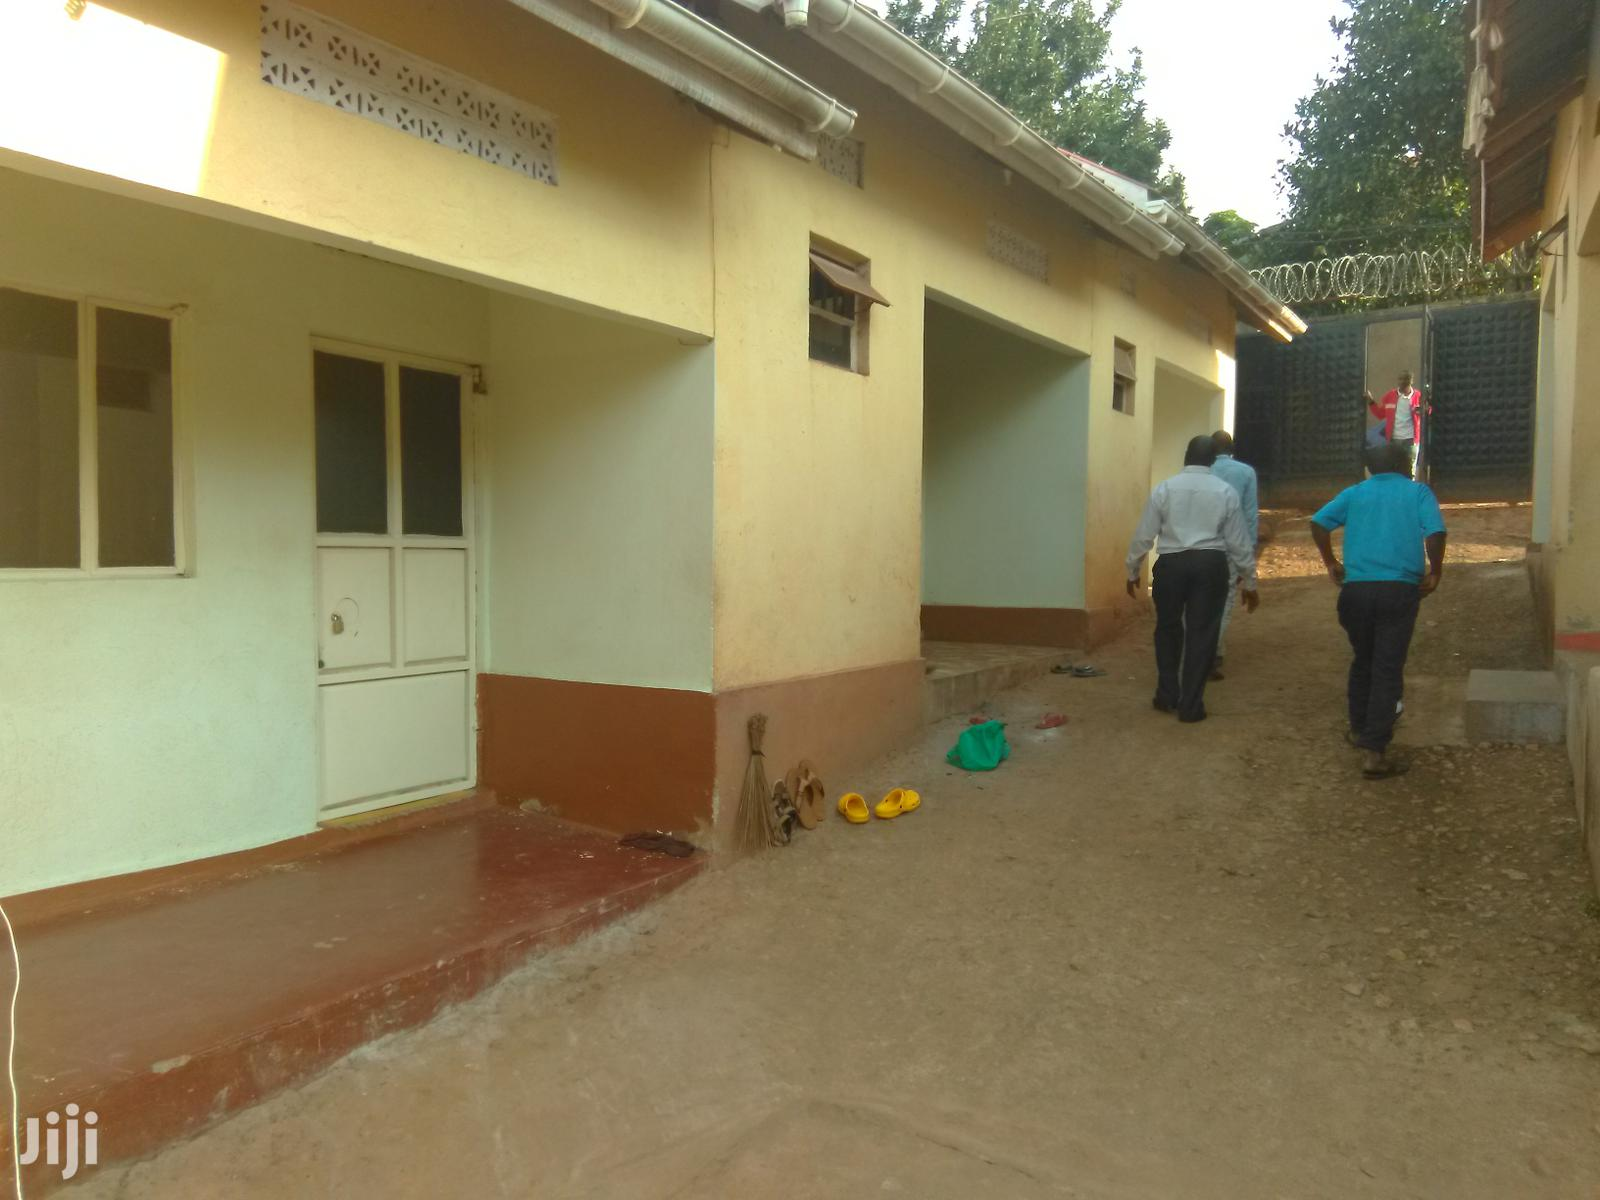 Very Nice Five Self Contained Rentals On Quick Sale In Namasuba Ndejje | Land & Plots For Sale for sale in Kampala, Central Region, Uganda